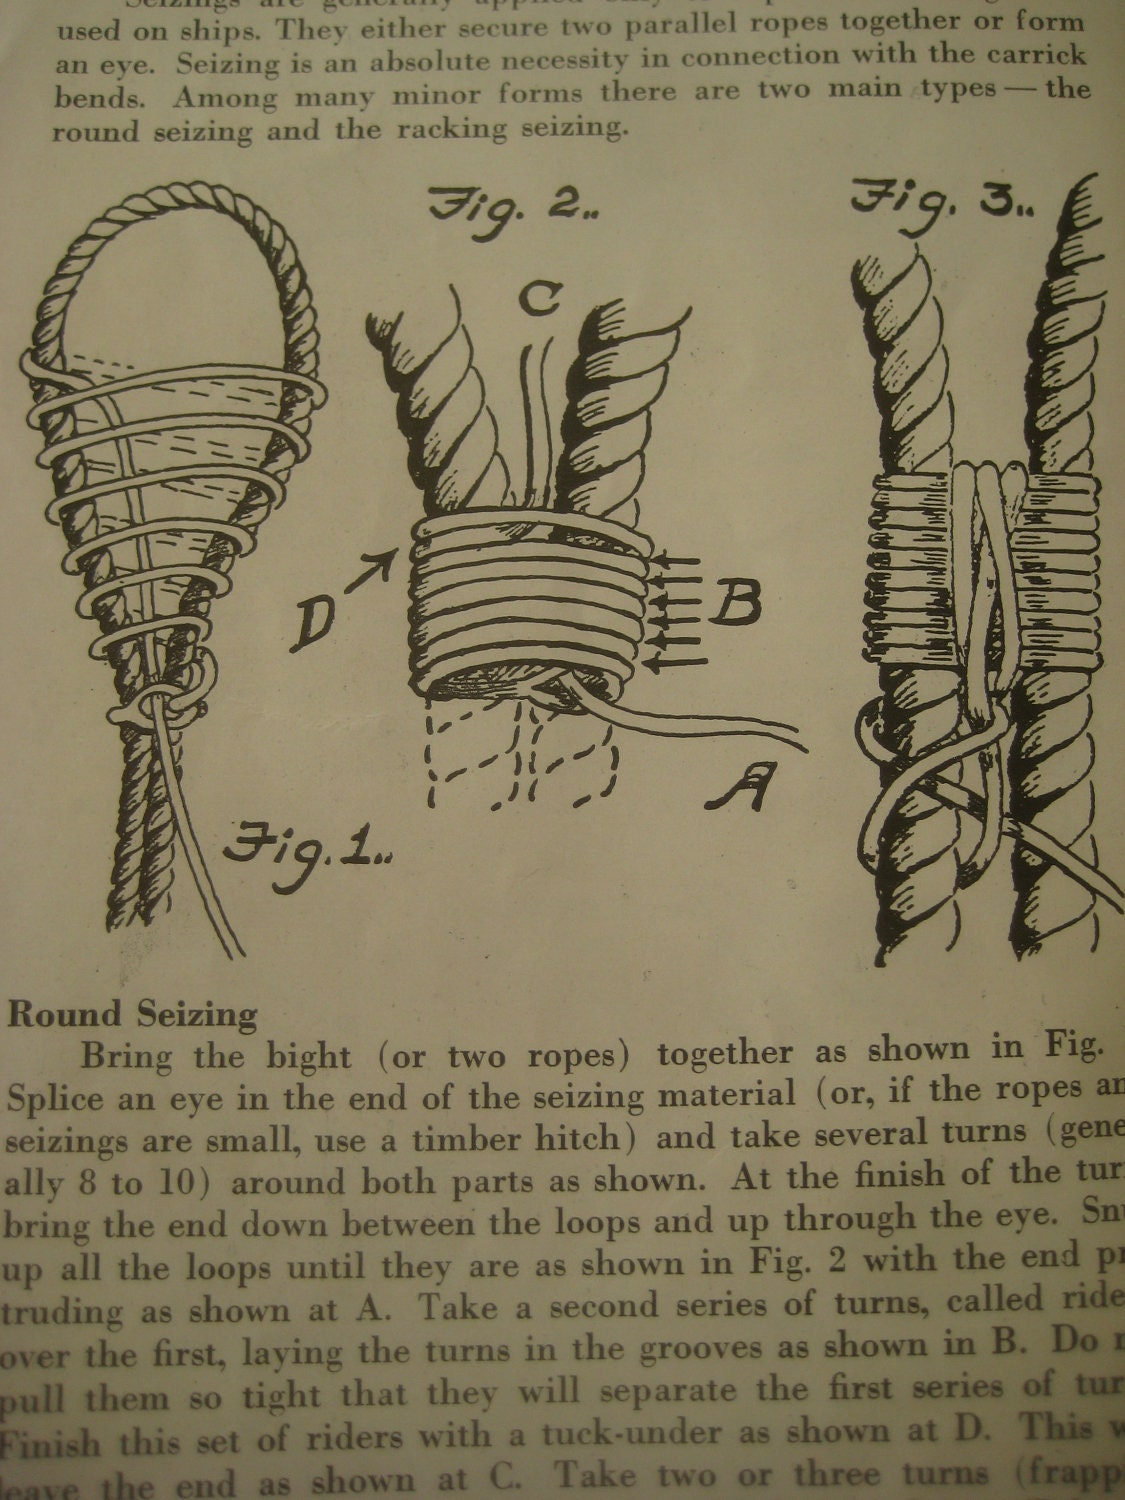 Vintage Knot Tying Boy Scouts How To Book Knot Illustrations